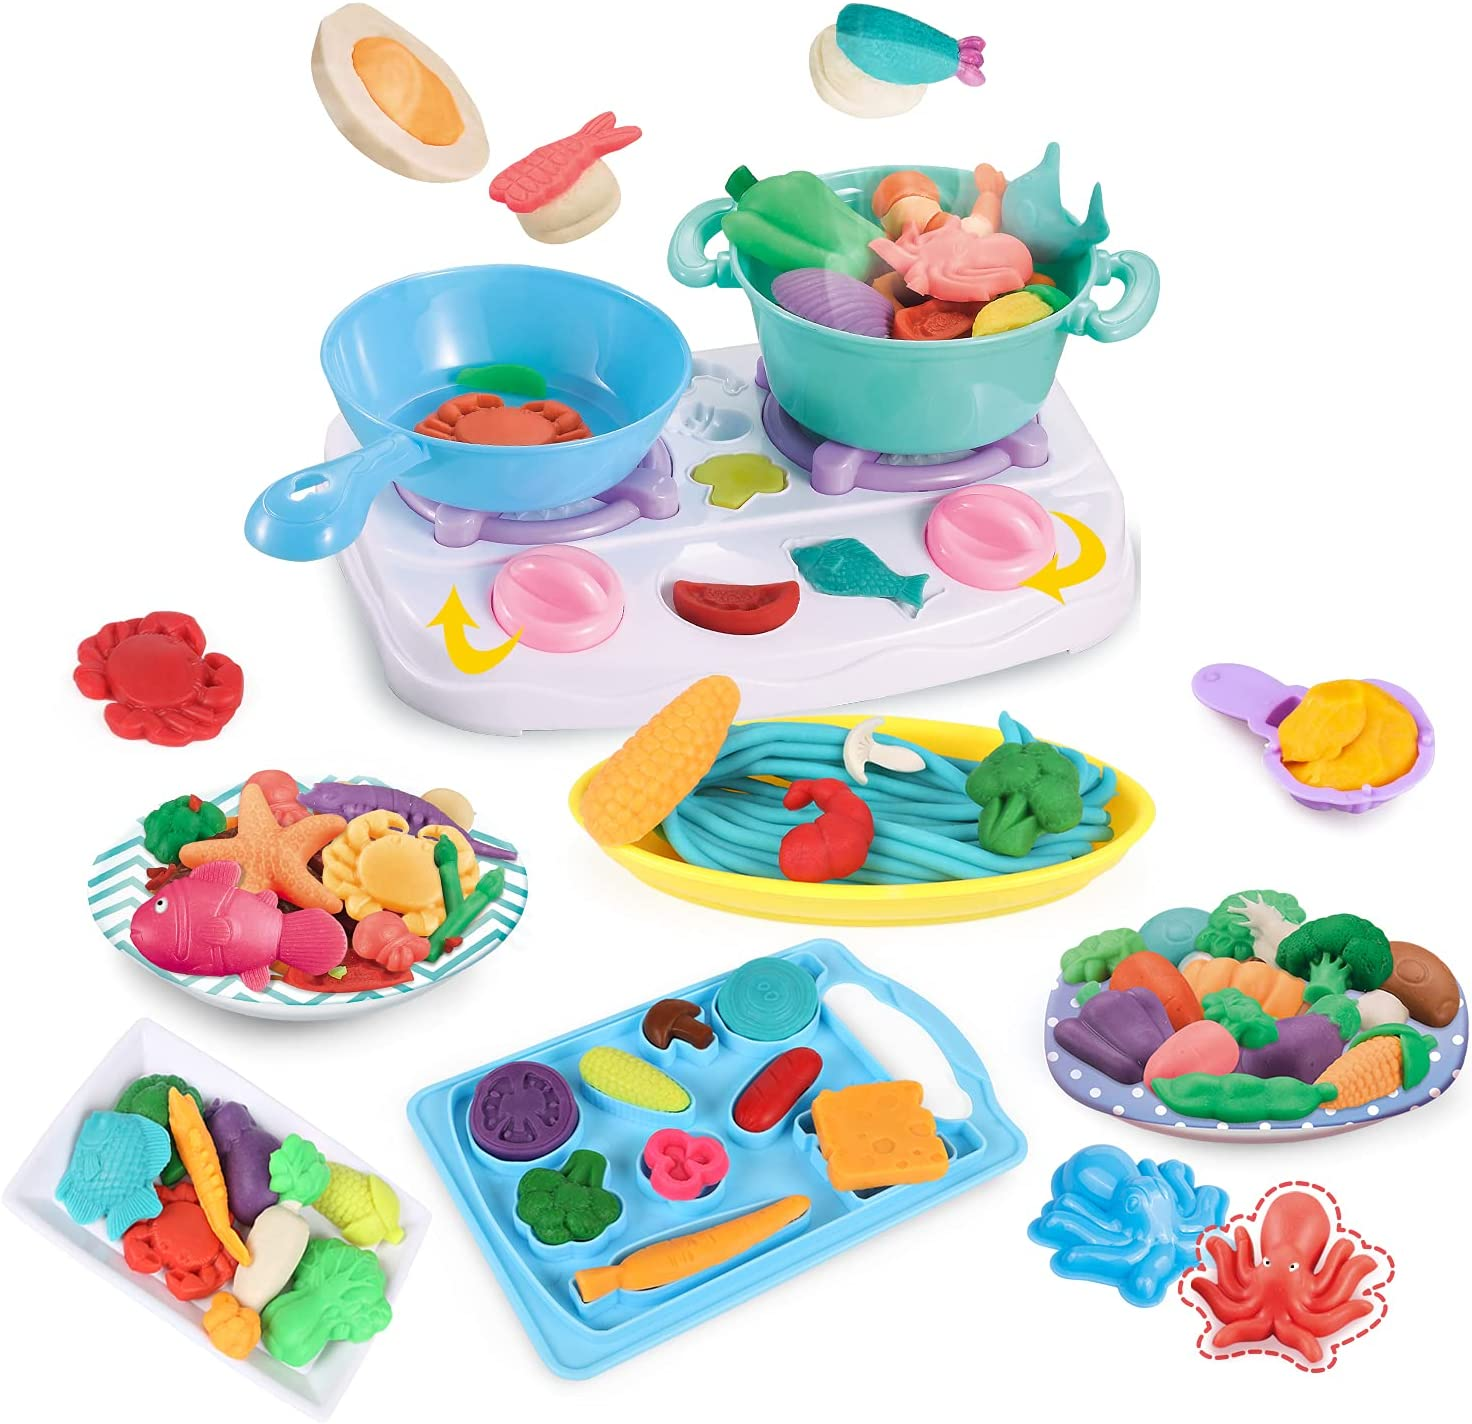 Modeling Playdough Stovetop Tools,Kitchen Creations,Multi Colors Accessories,Pretend Play Food Set,Kids Gift Age 3+ ,Without Non-Toxic Compound